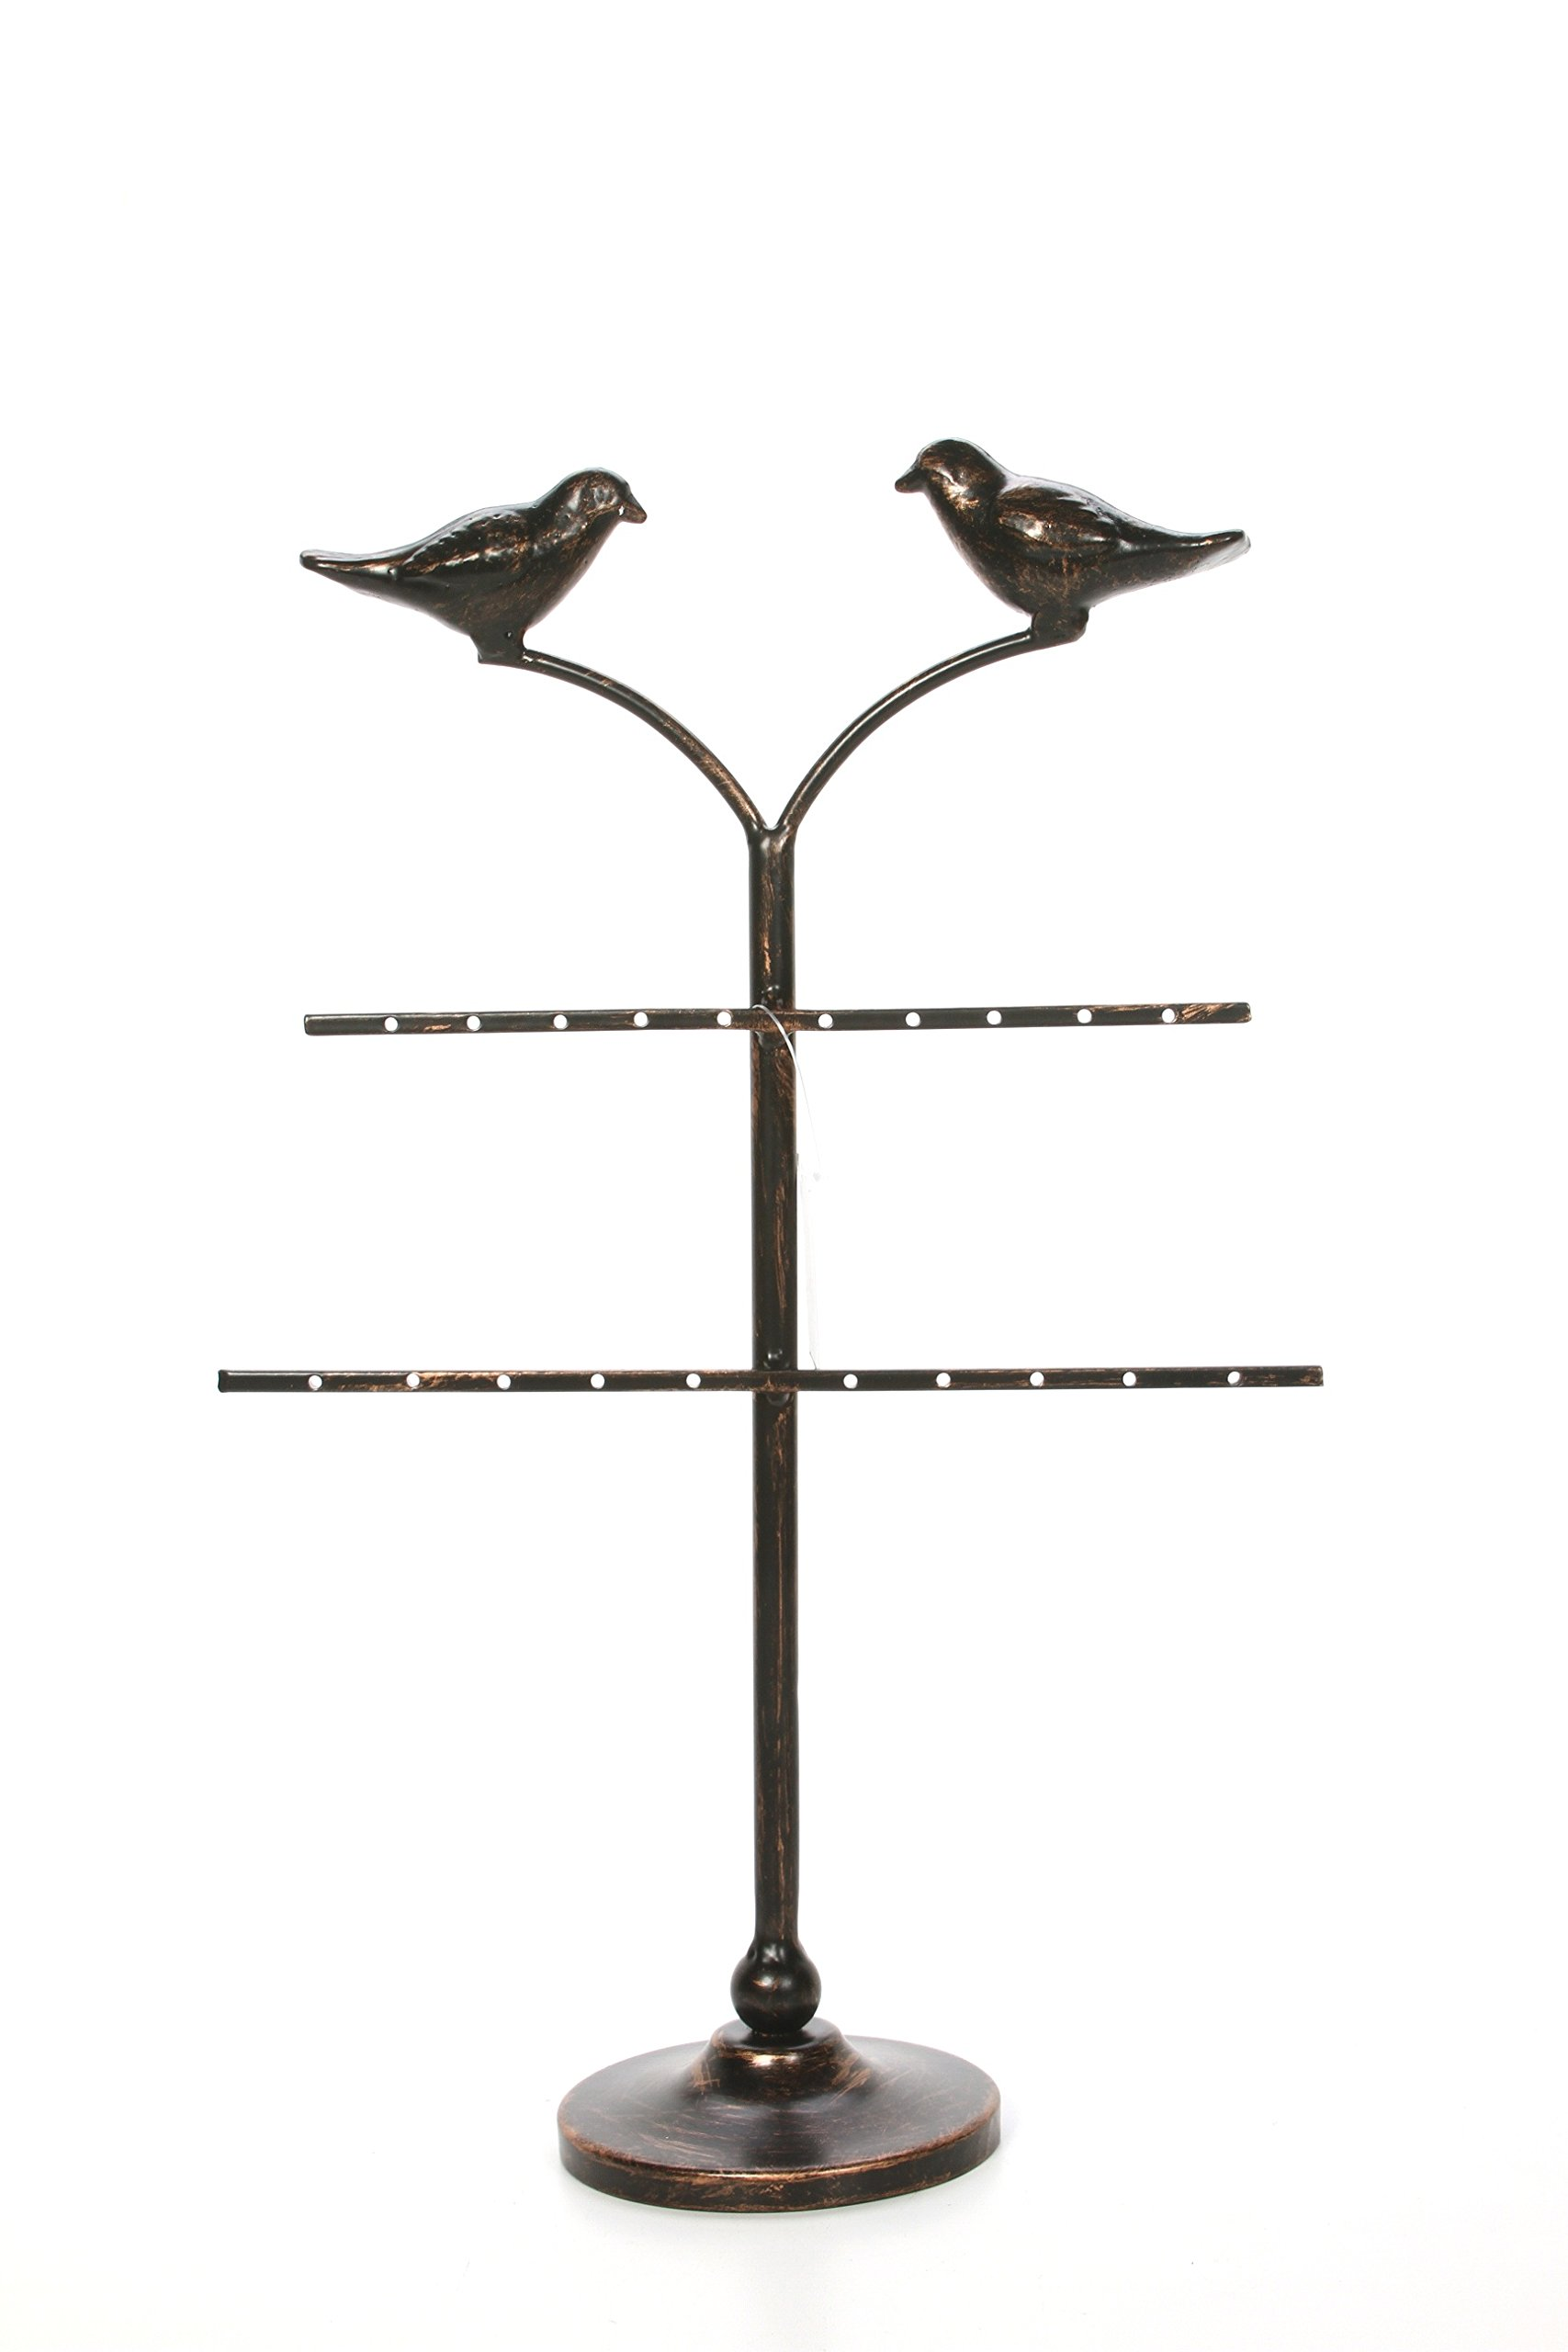 Hosley 20.25'' High, Decorative Tabletop Cardinal Birds Jewelry Chain Ring Knick Knack Stand. Ideal Gift for Wedding, Home, Party Favor, Spa, Reiki, Meditation, Bathroom Settings O9